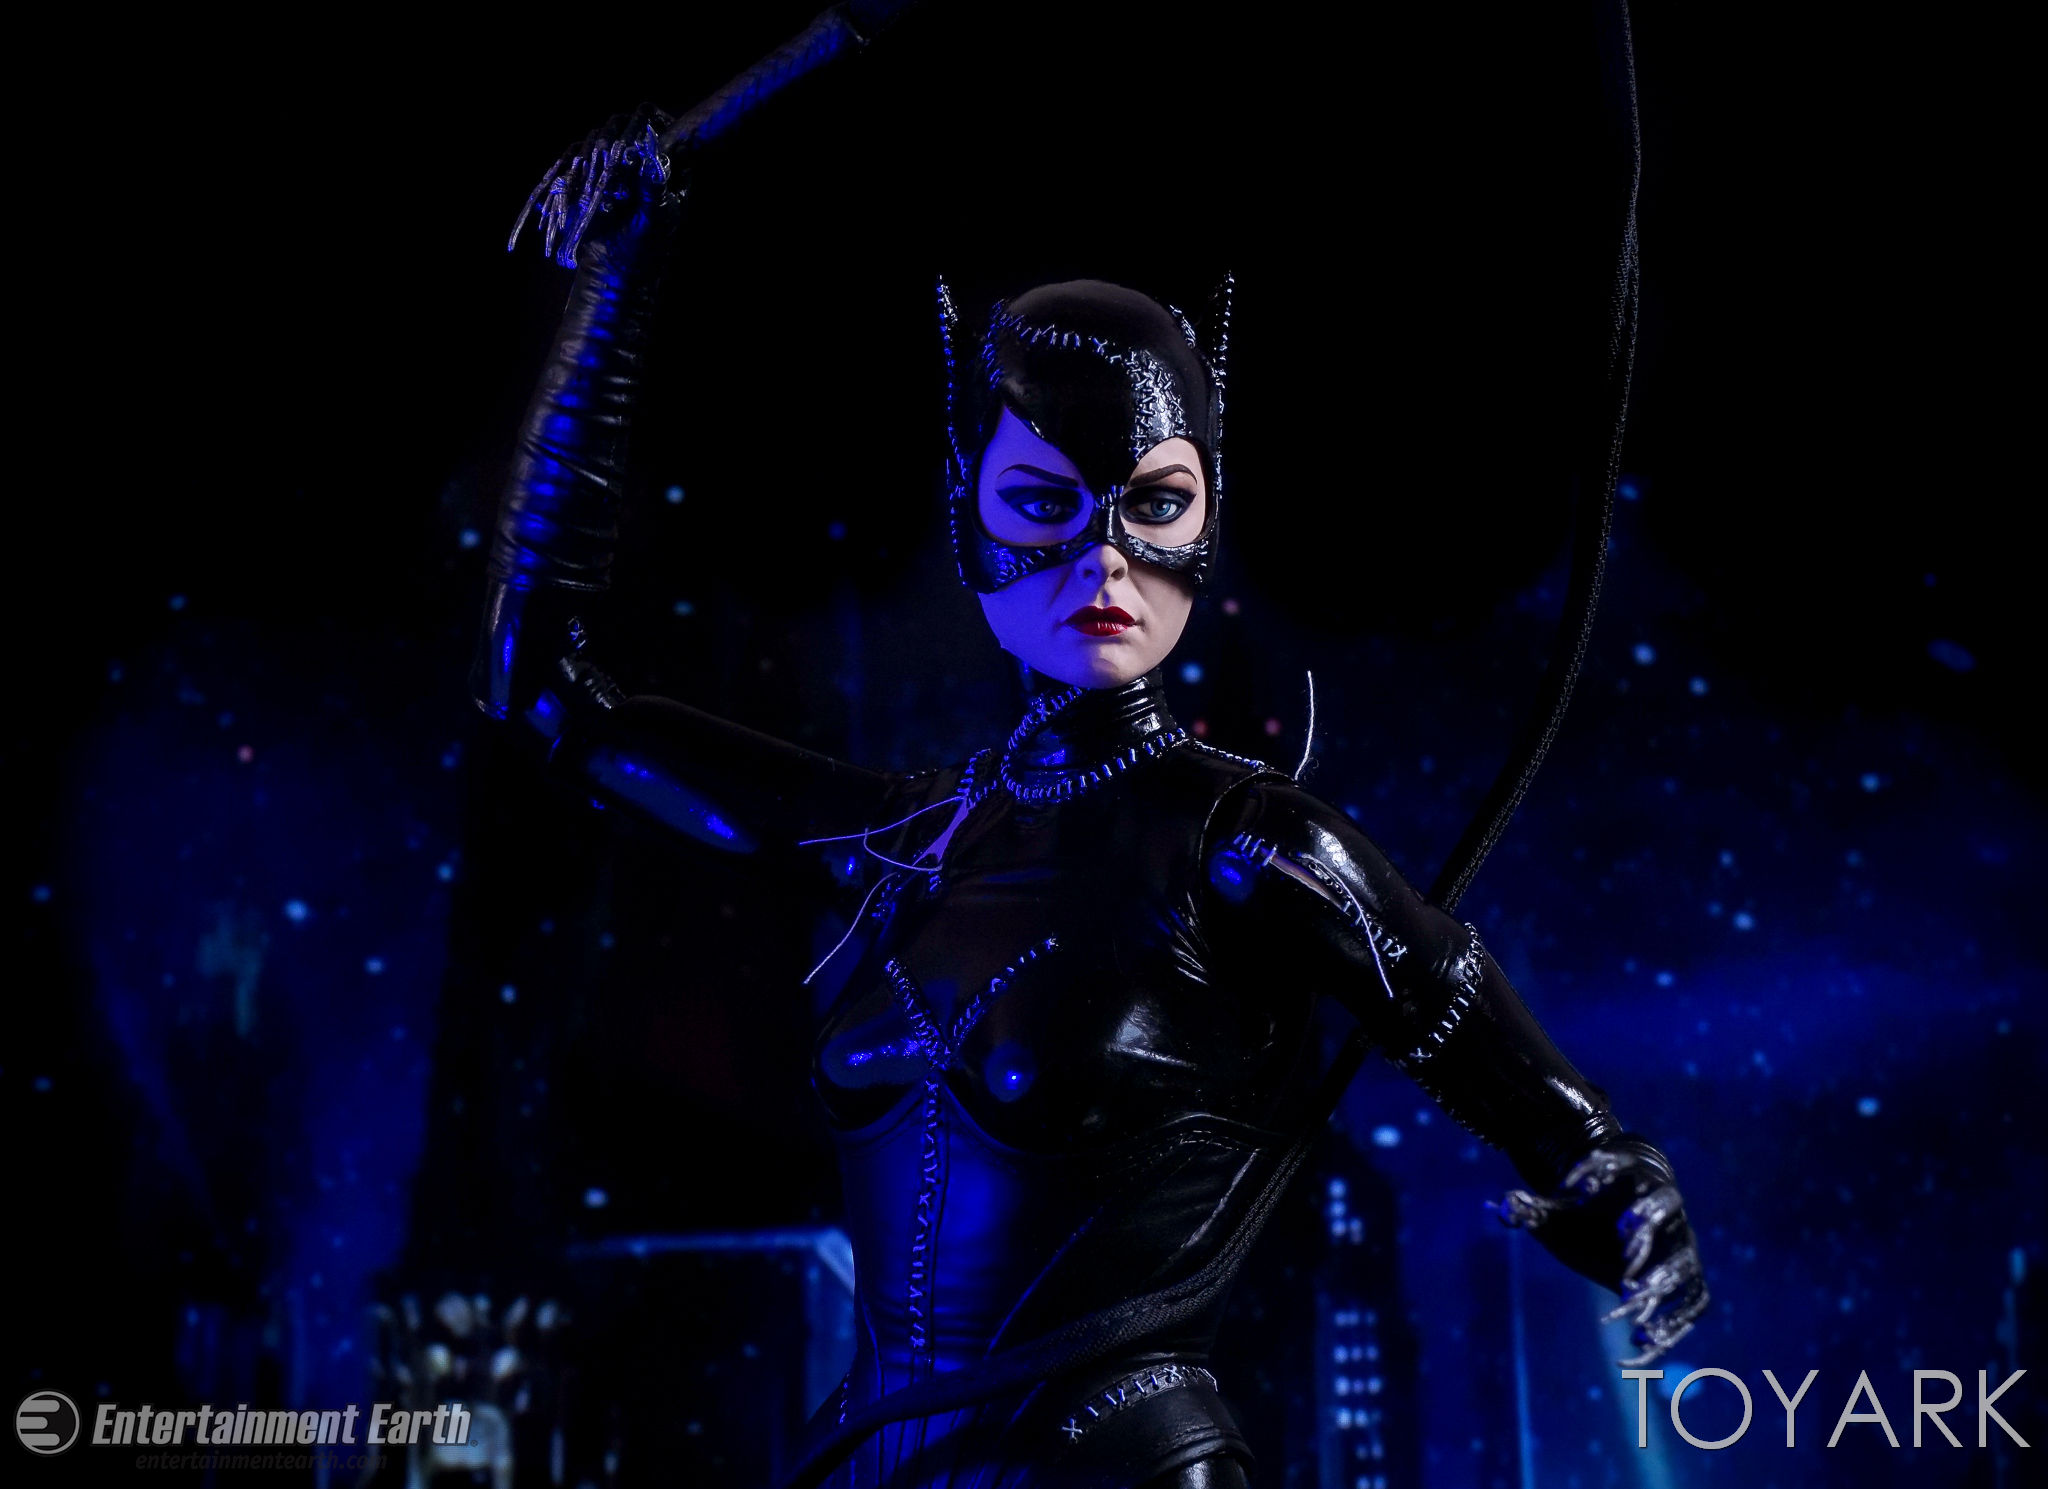 http://news.toyark.com/wp-content/uploads/sites/4/2017/03/NECA-Batman-Returns-Catwoman-021.jpg